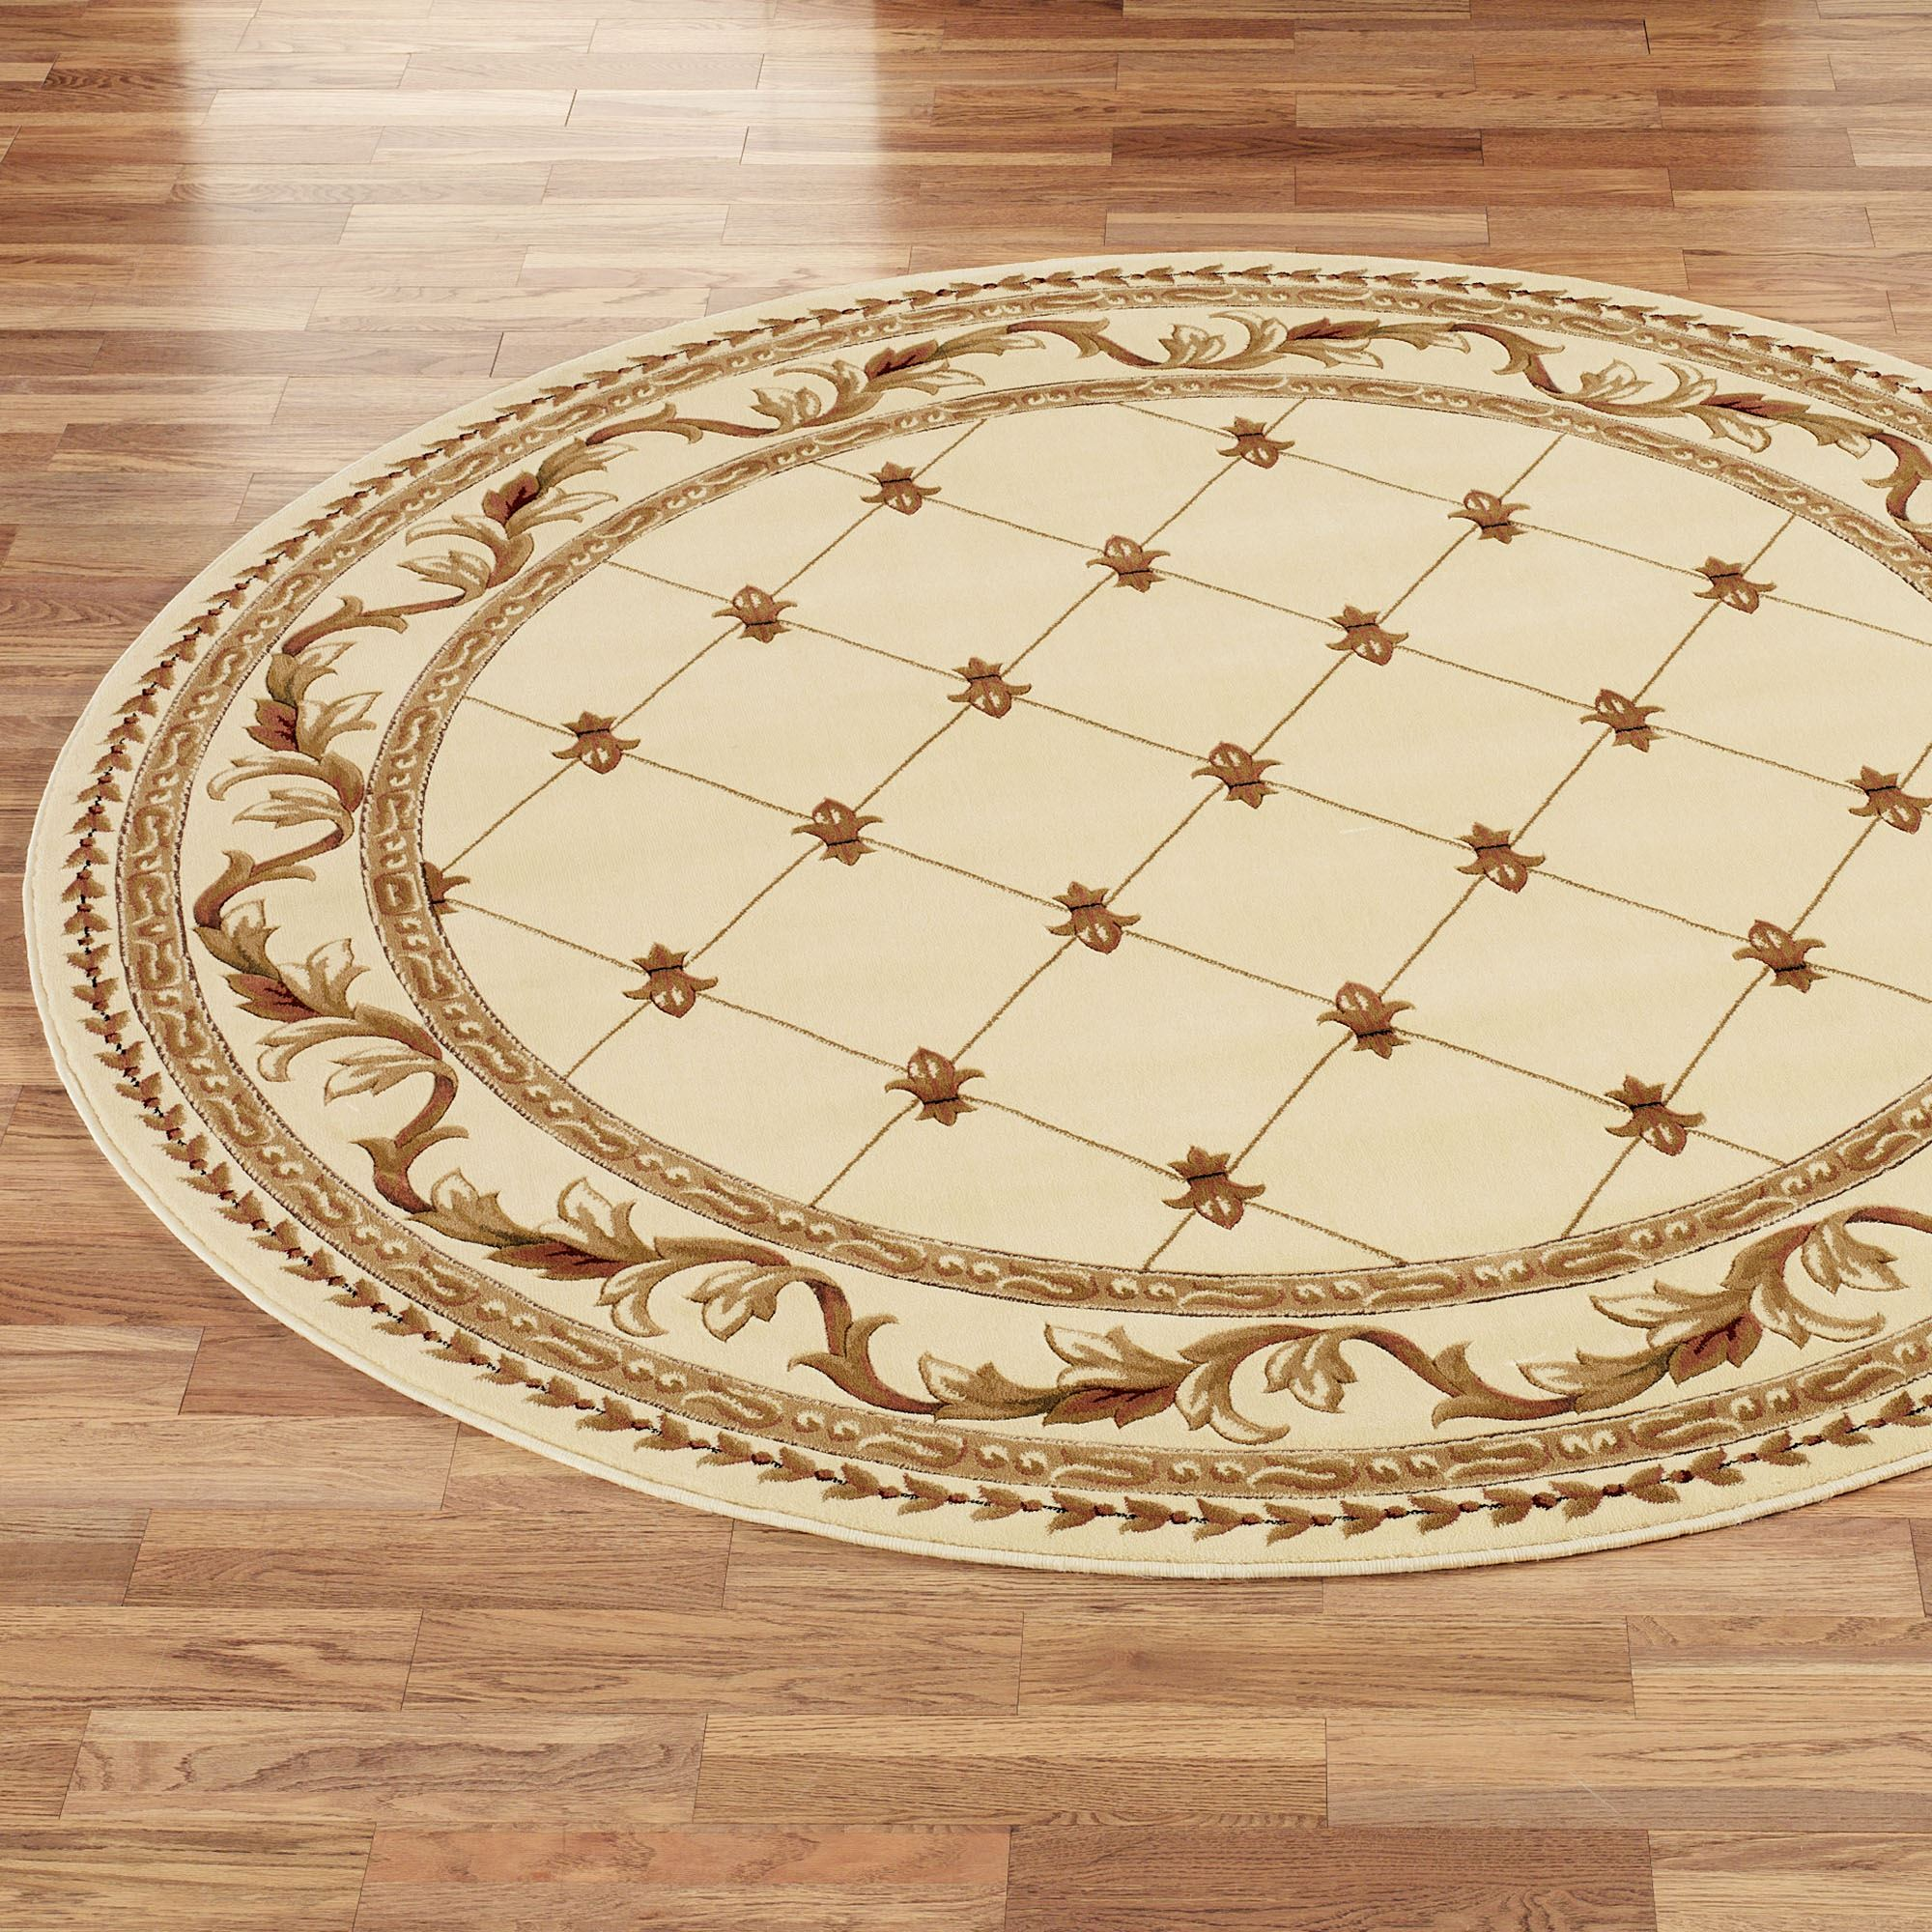 natural jute rugs fibre area round in silver cm maisons designs fiber foot monde next circle vertige on du rug d